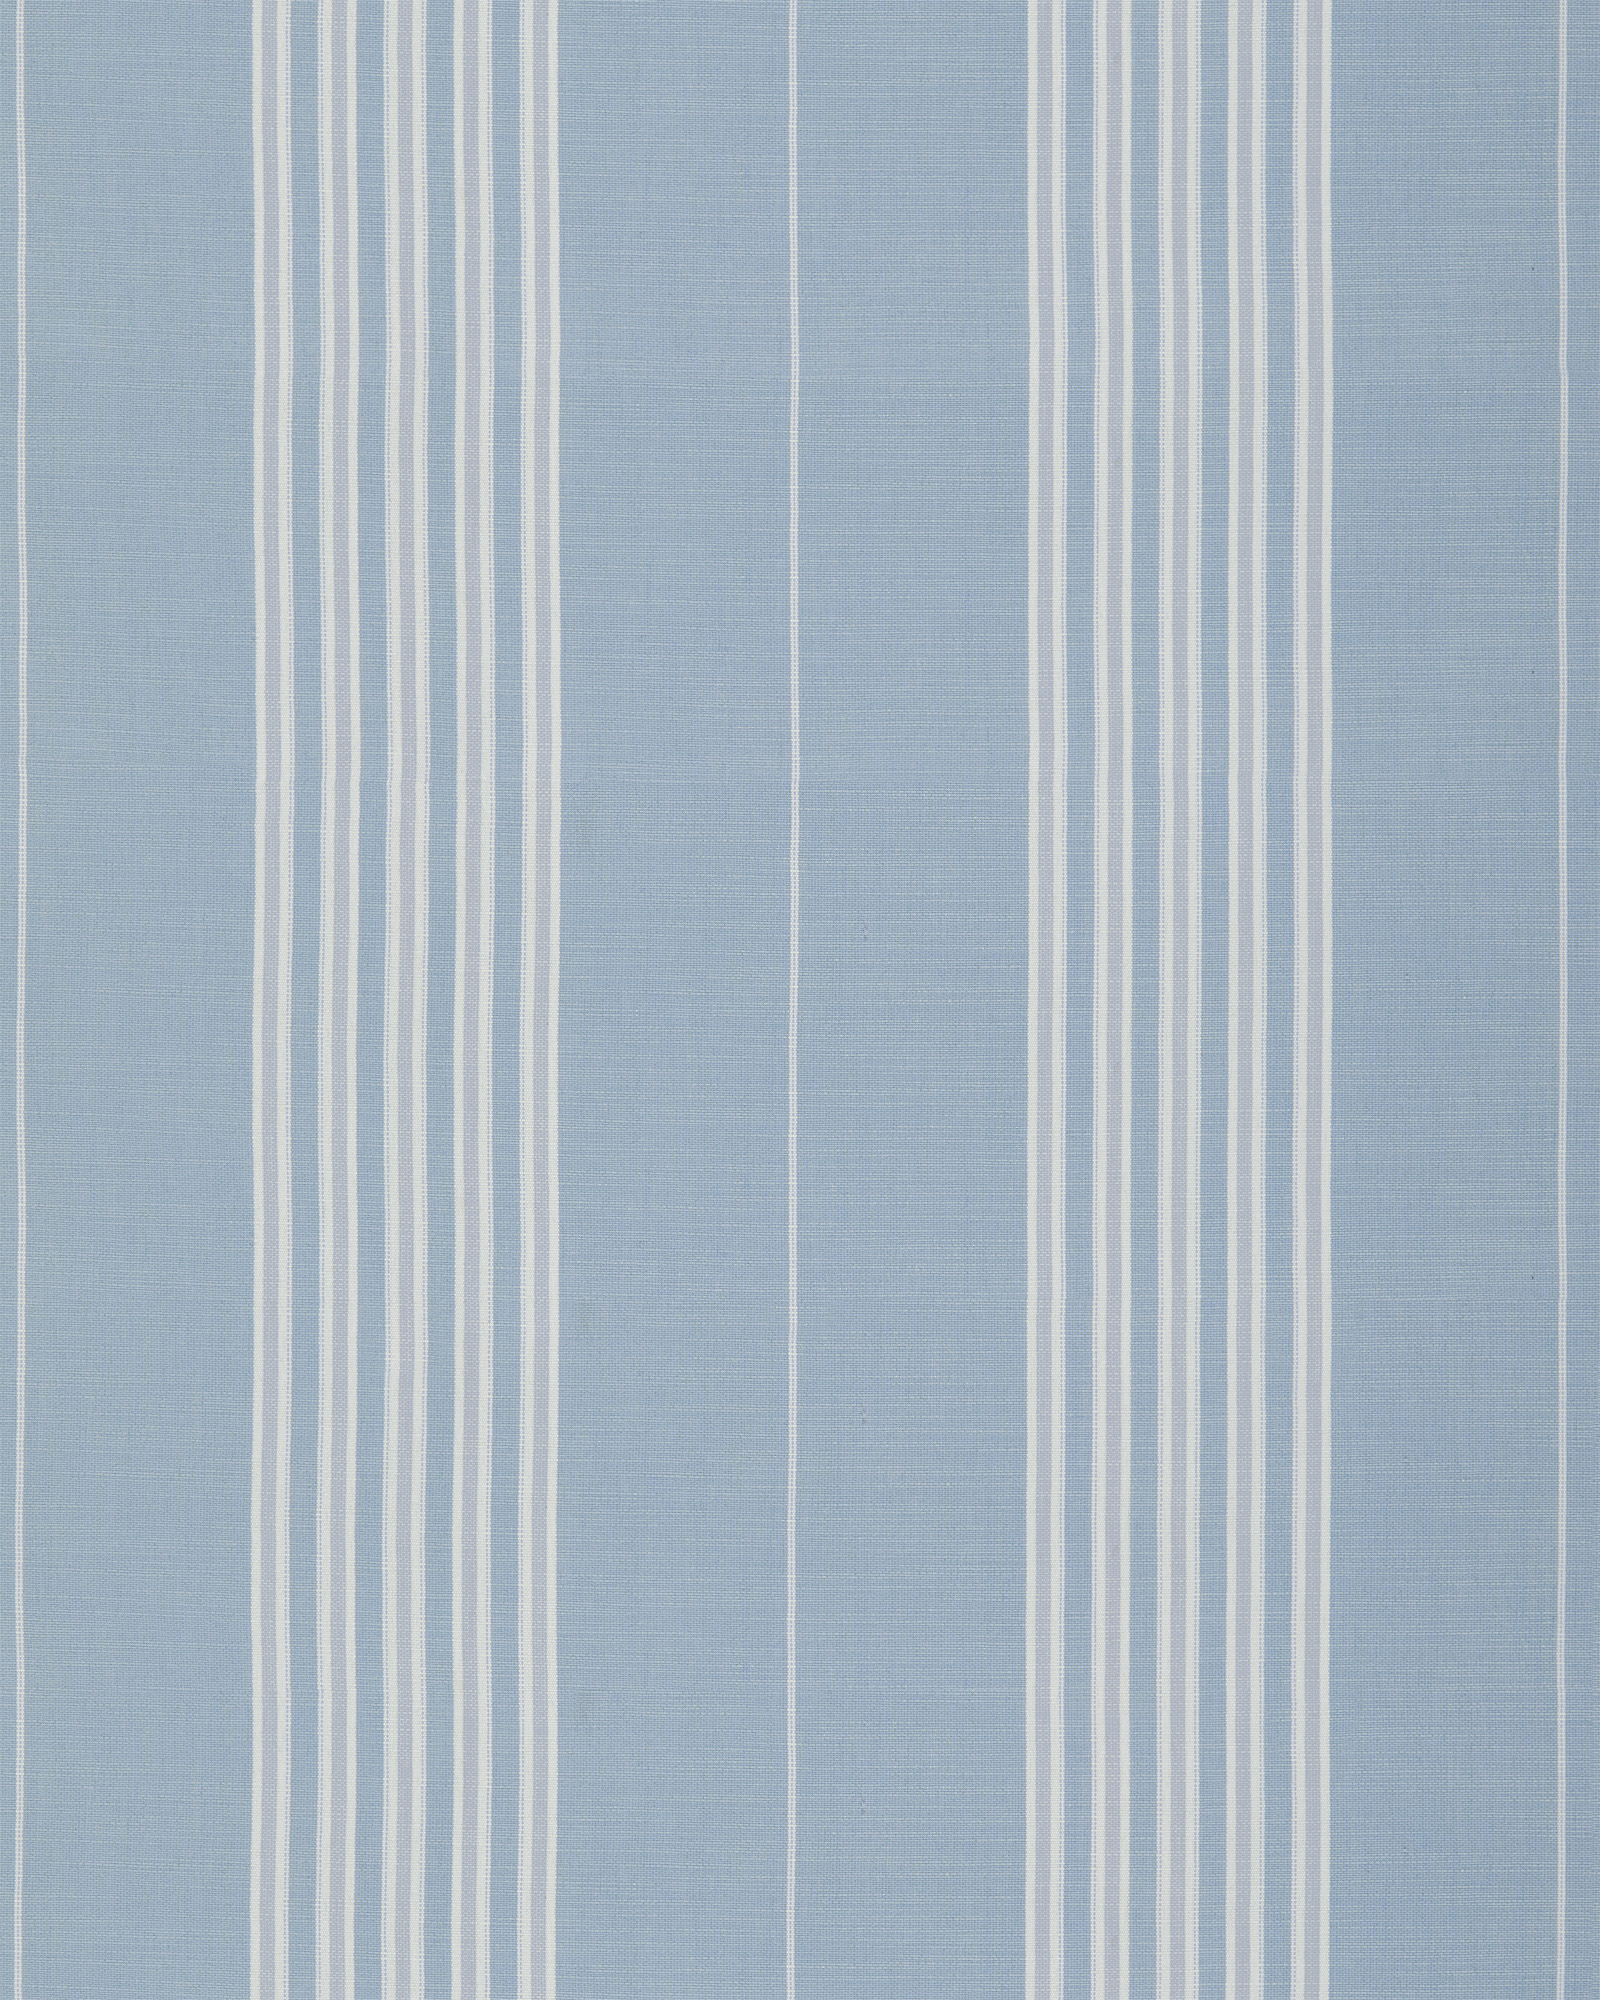 Fabric By the Yard - Perennials® Lake Stripe, Coastal/Sky